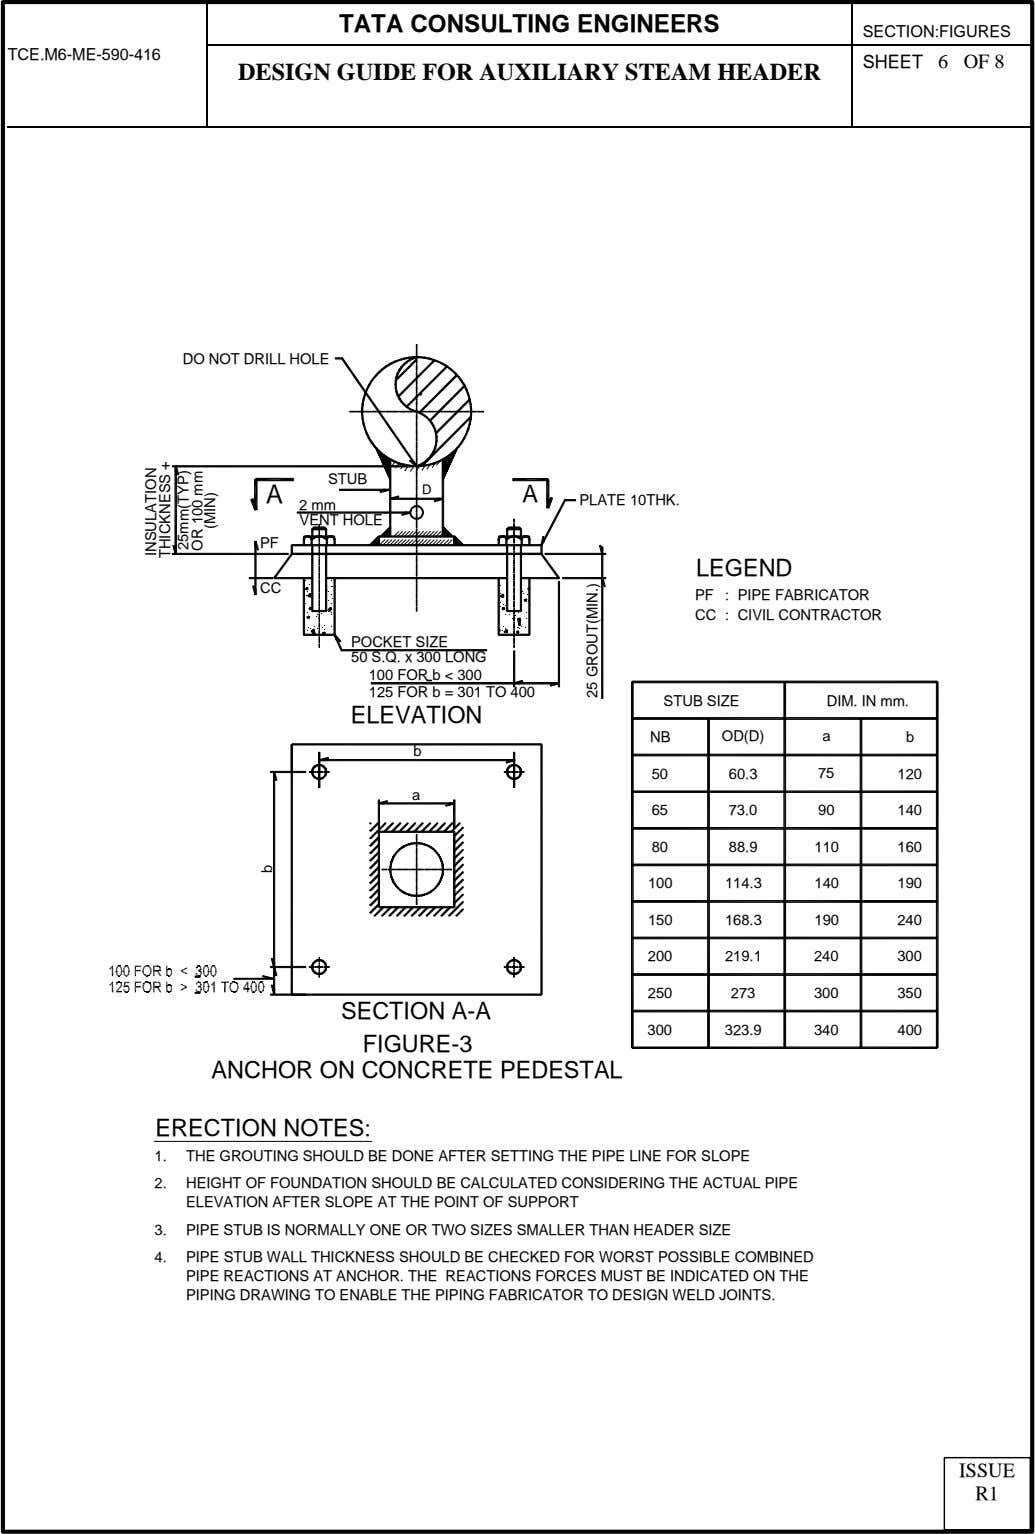 TATA CONSULTING ENGINEERS SECTION:FIGURES TCE.M6-ME-590-416 SHEET 6 OF 8 DESIGN GUIDE FOR AUXILIARY STEAM HEADER